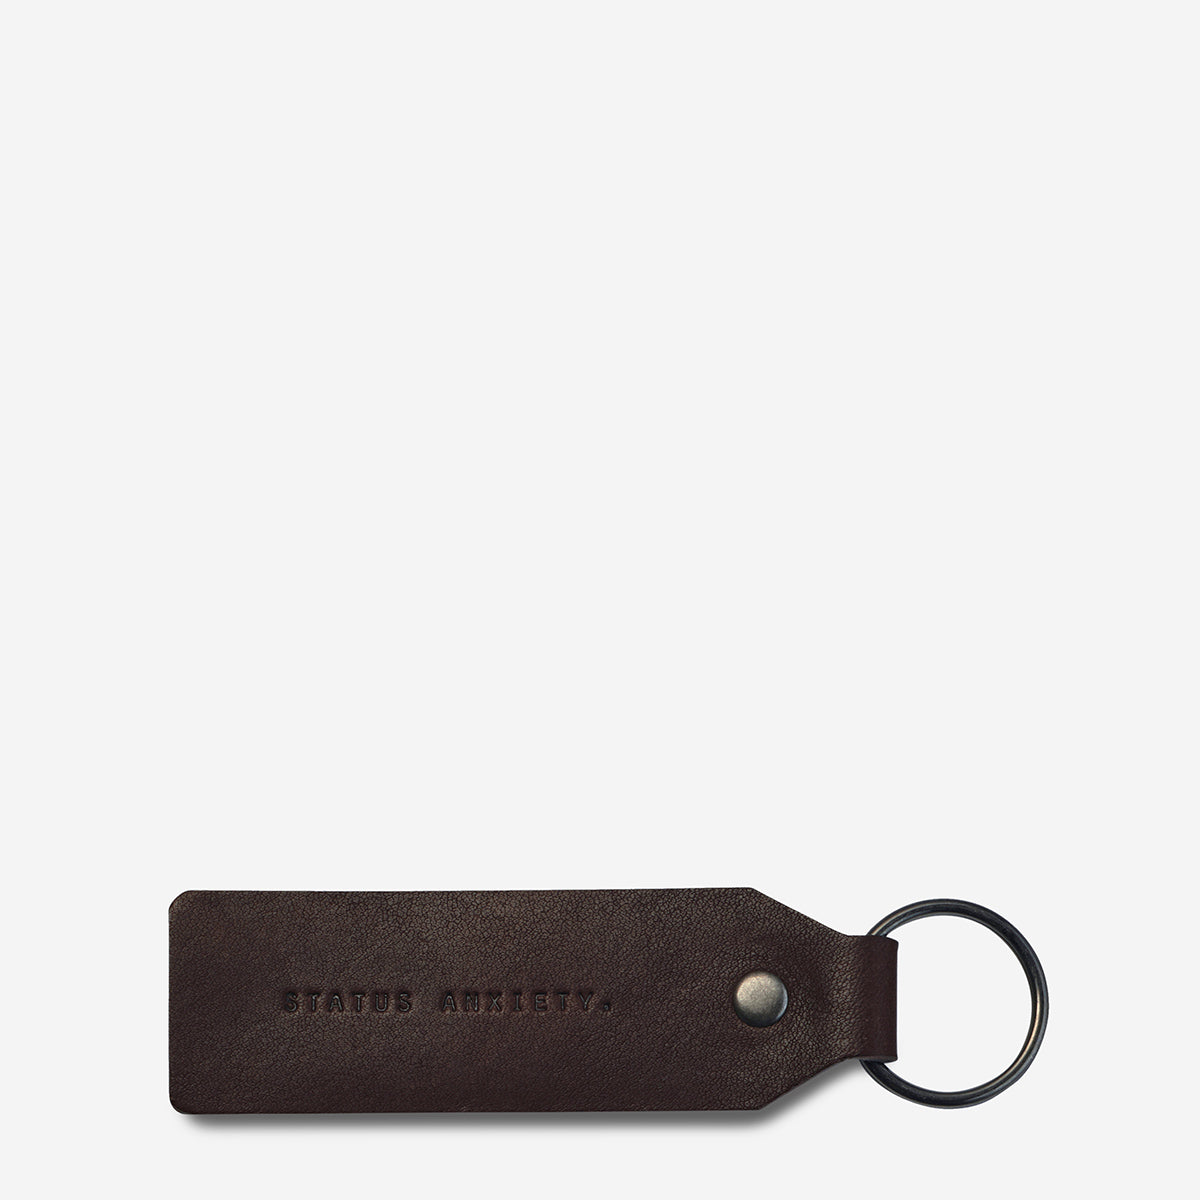 Status Anxiety If I Stay Genuine Leather Keyring - Chocolate